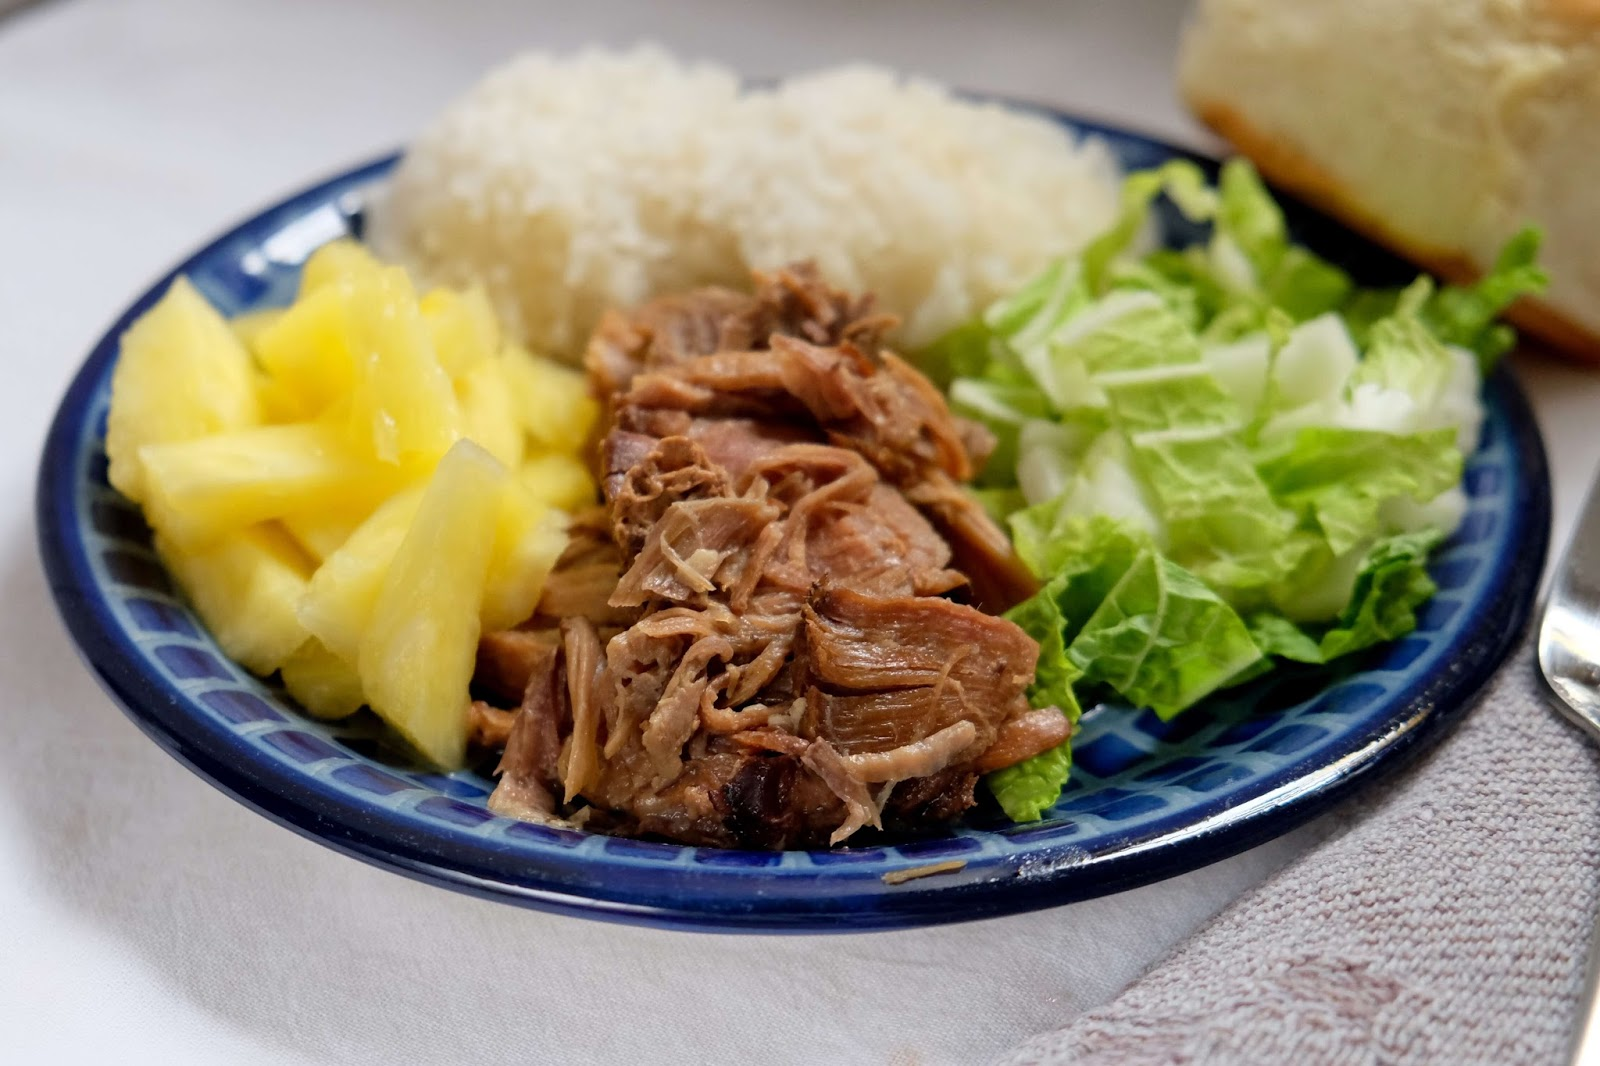 a plate of kalua pig with rice, cabbage, and fresh pineapple